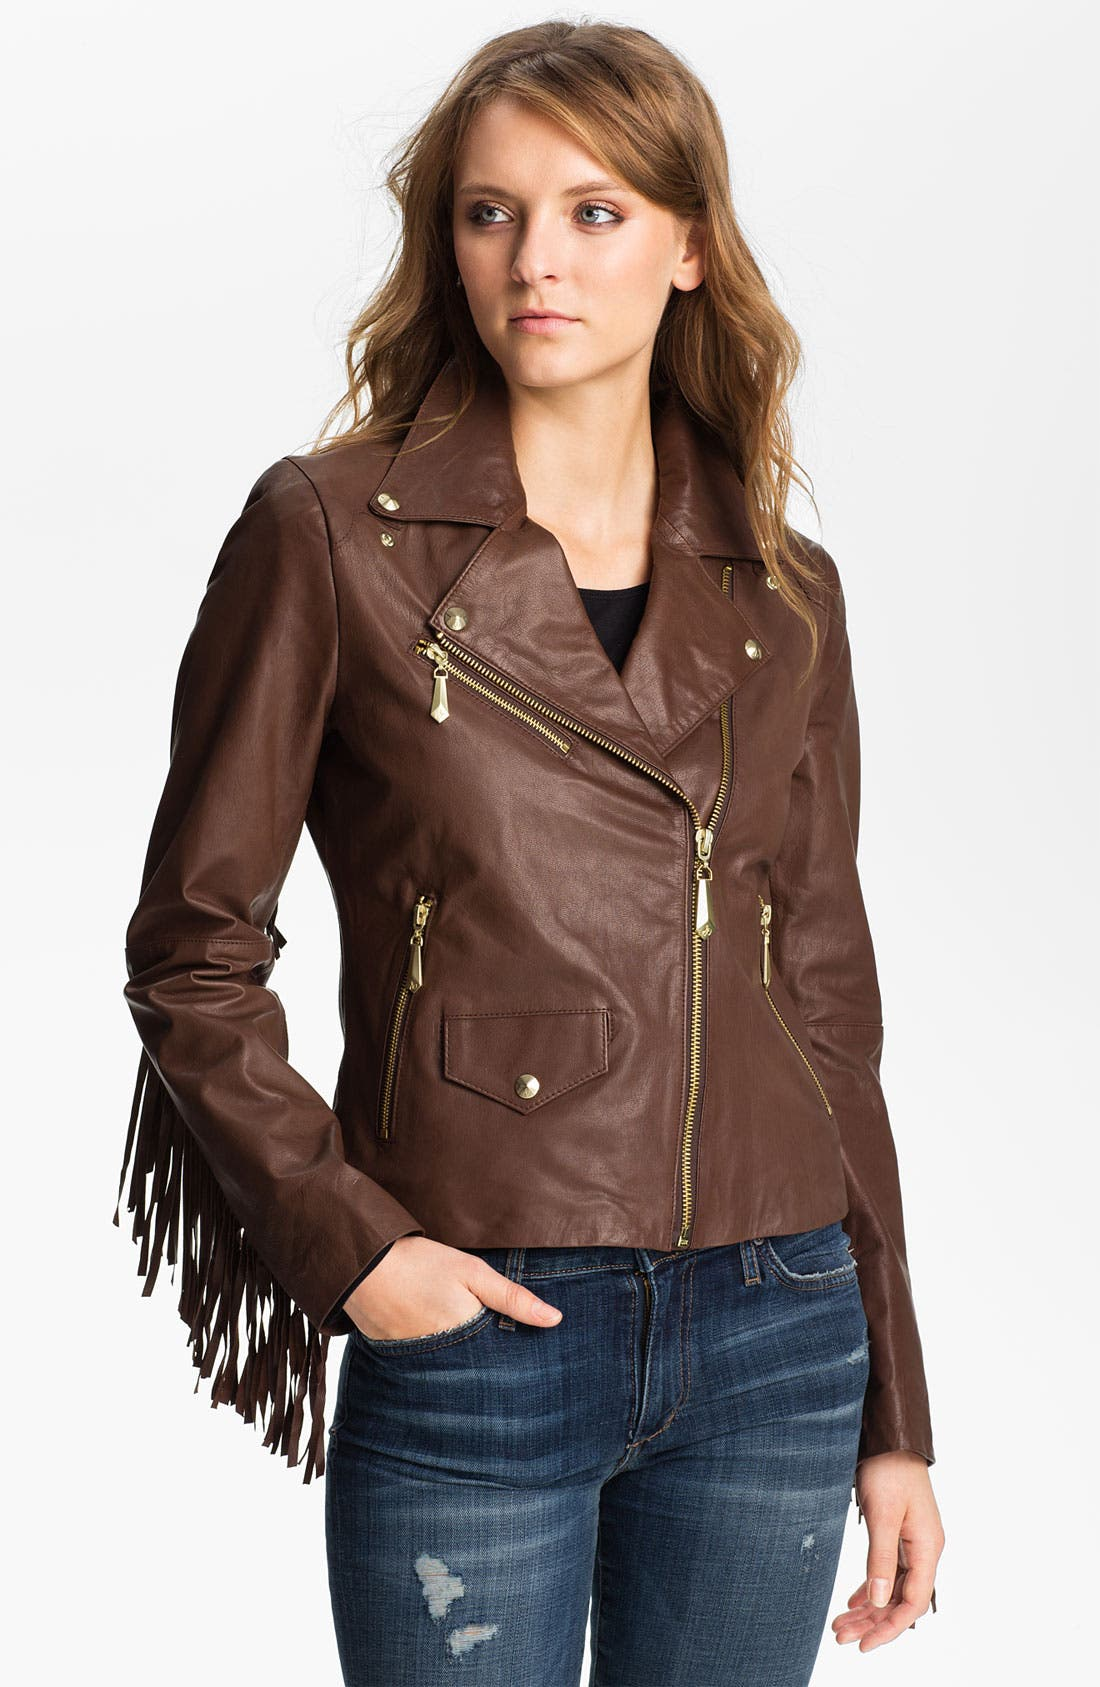 Alternate Image 1 Selected - Sam Edelman Fringed Asymmetrical Leather Jacket